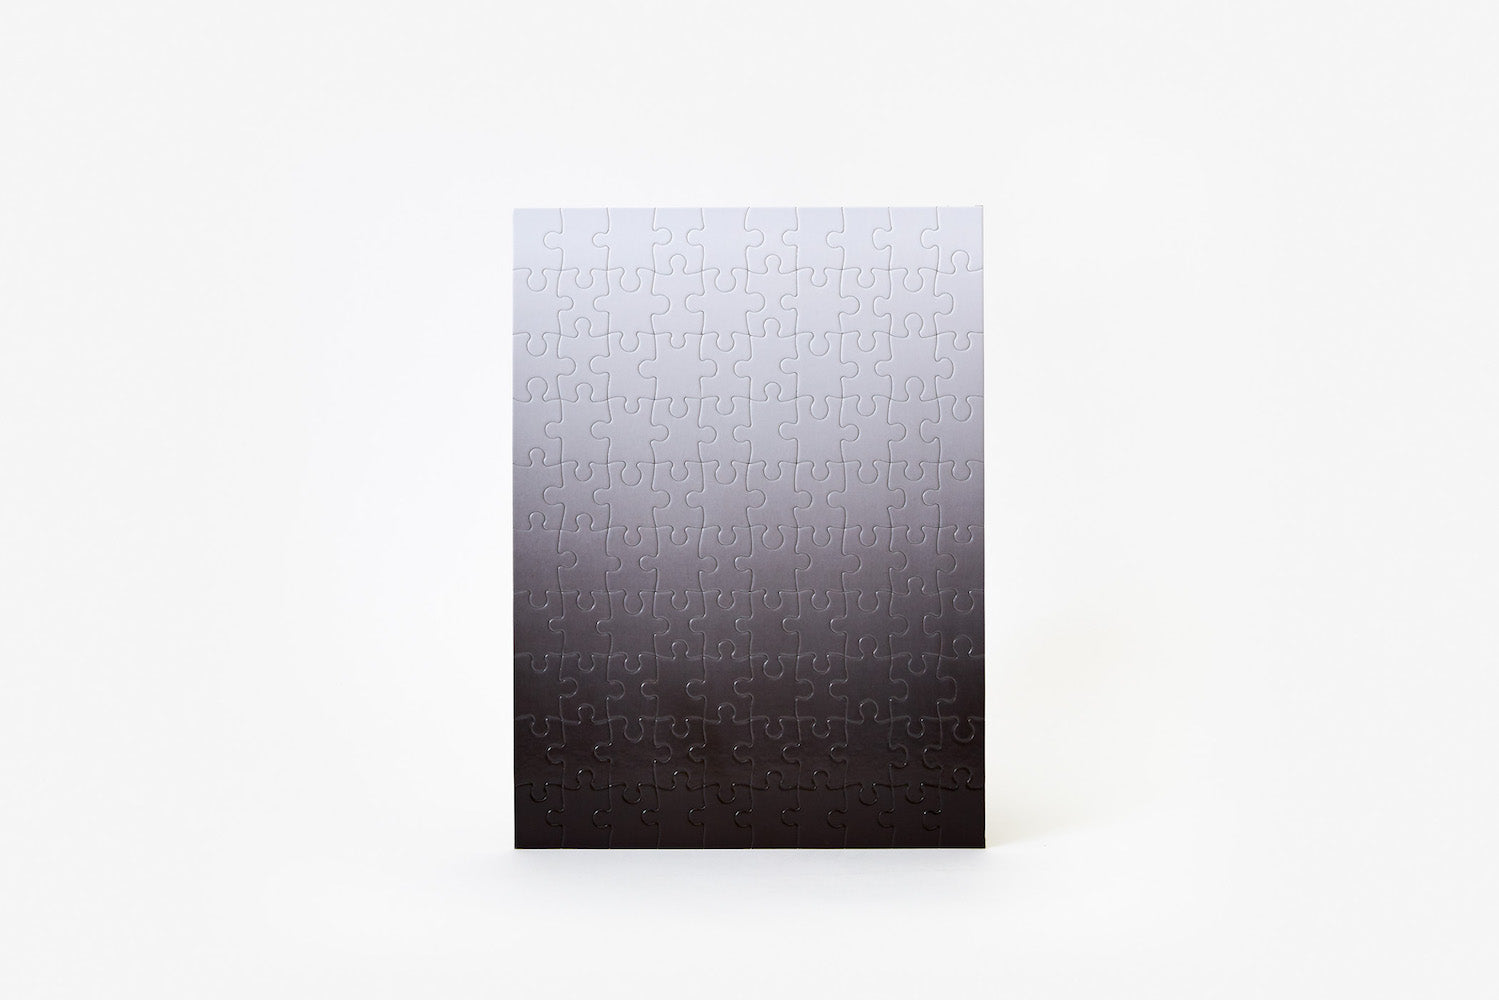 Gradient Puzzle - Black/White - 100 pieces